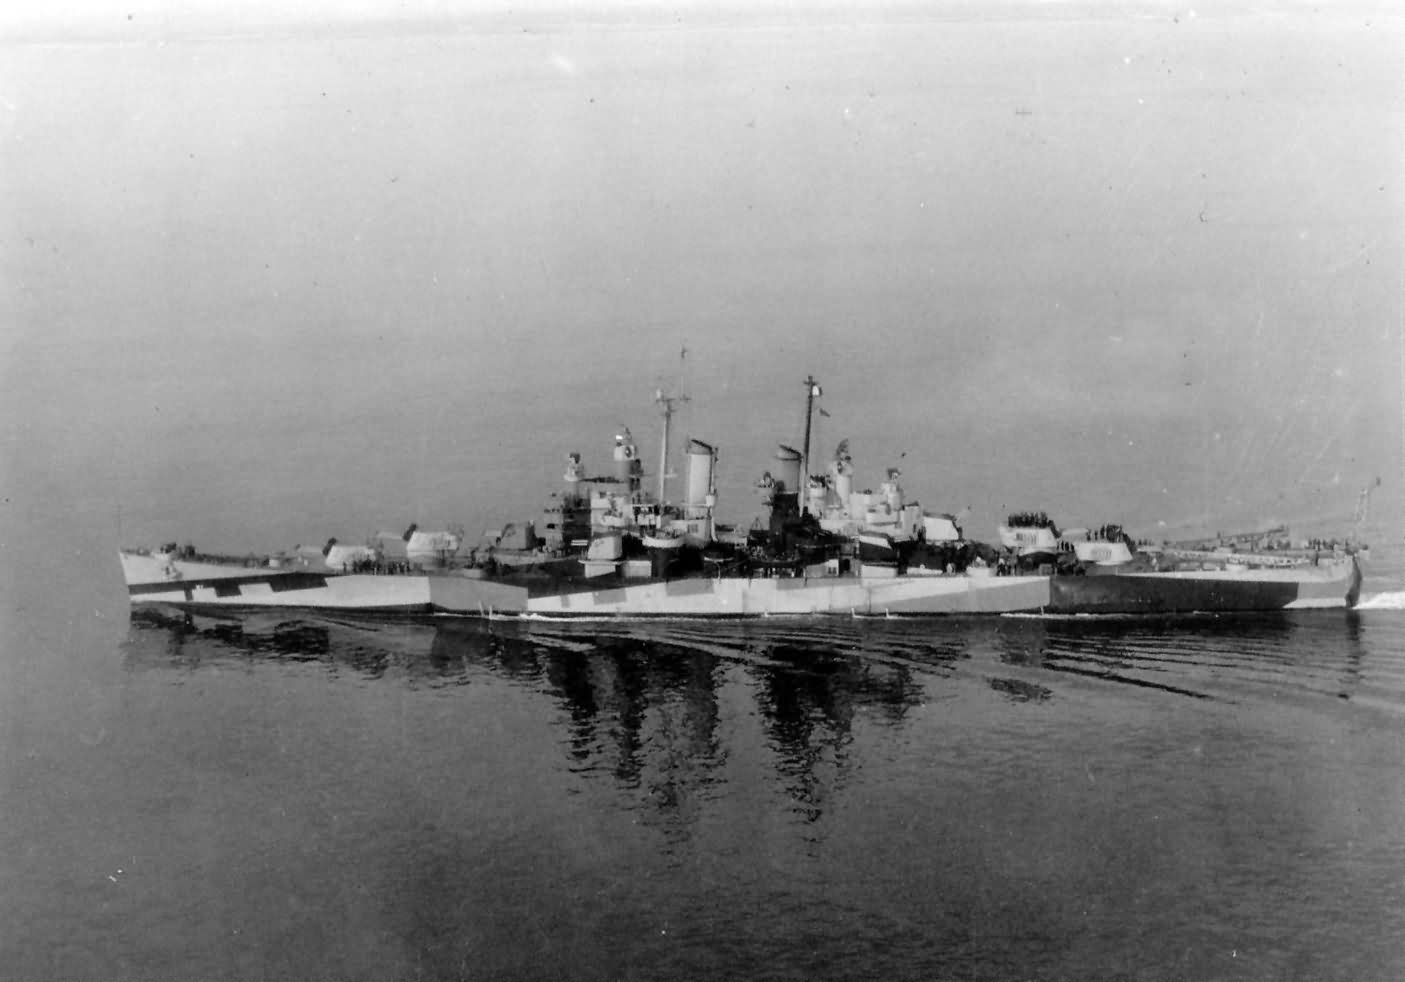 Light cruiser USS Duluth CL-87 in camouflage